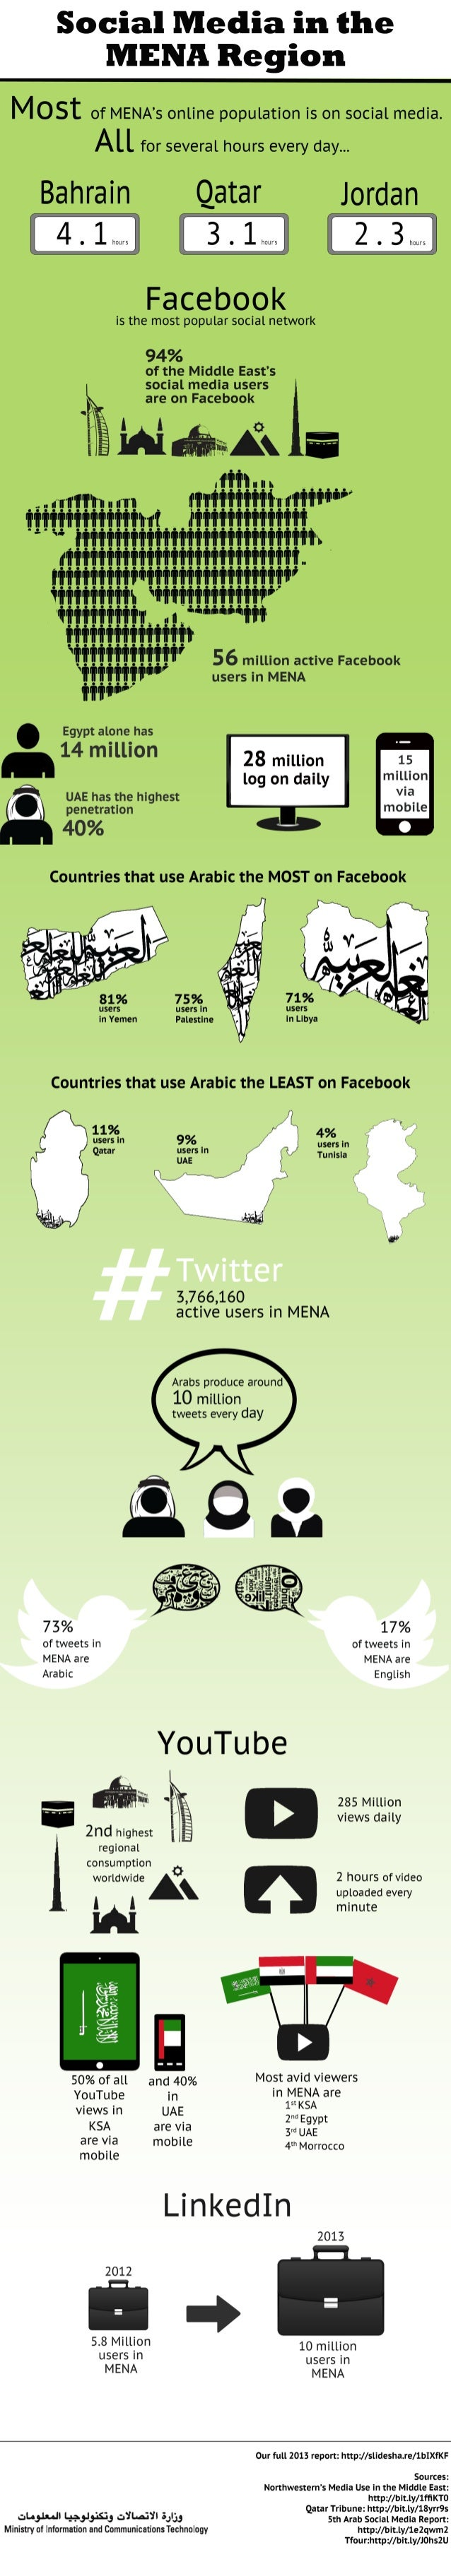 Infographic Social Media in the Middle East